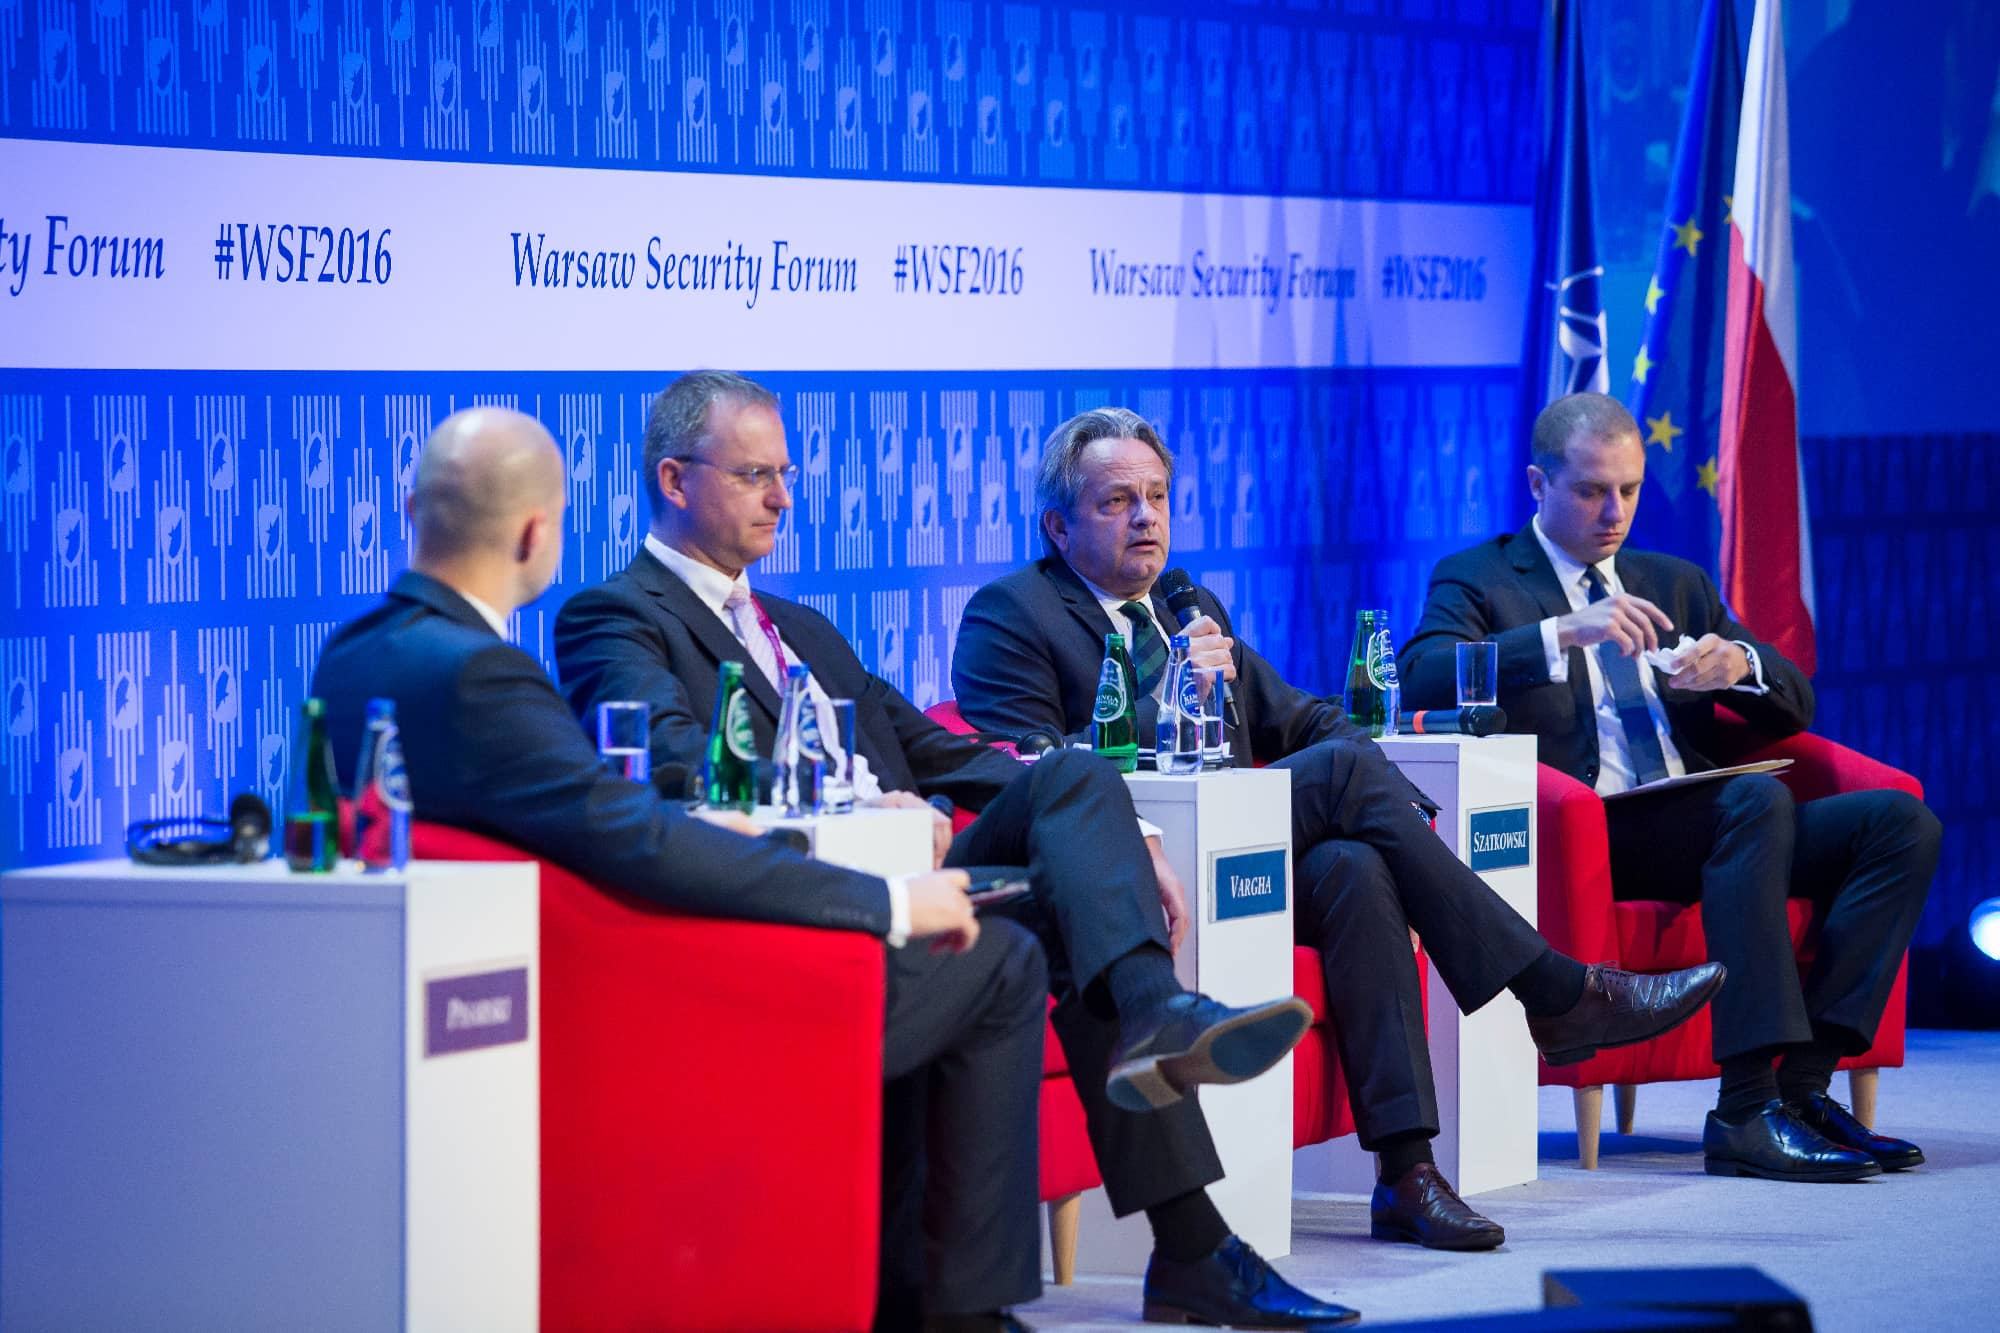 """""""We want the NATO to adapt toward 360° approach"""" – ministers of defence and of foreign affairs about the NATO and international security during the Warsaw Security Forum."""